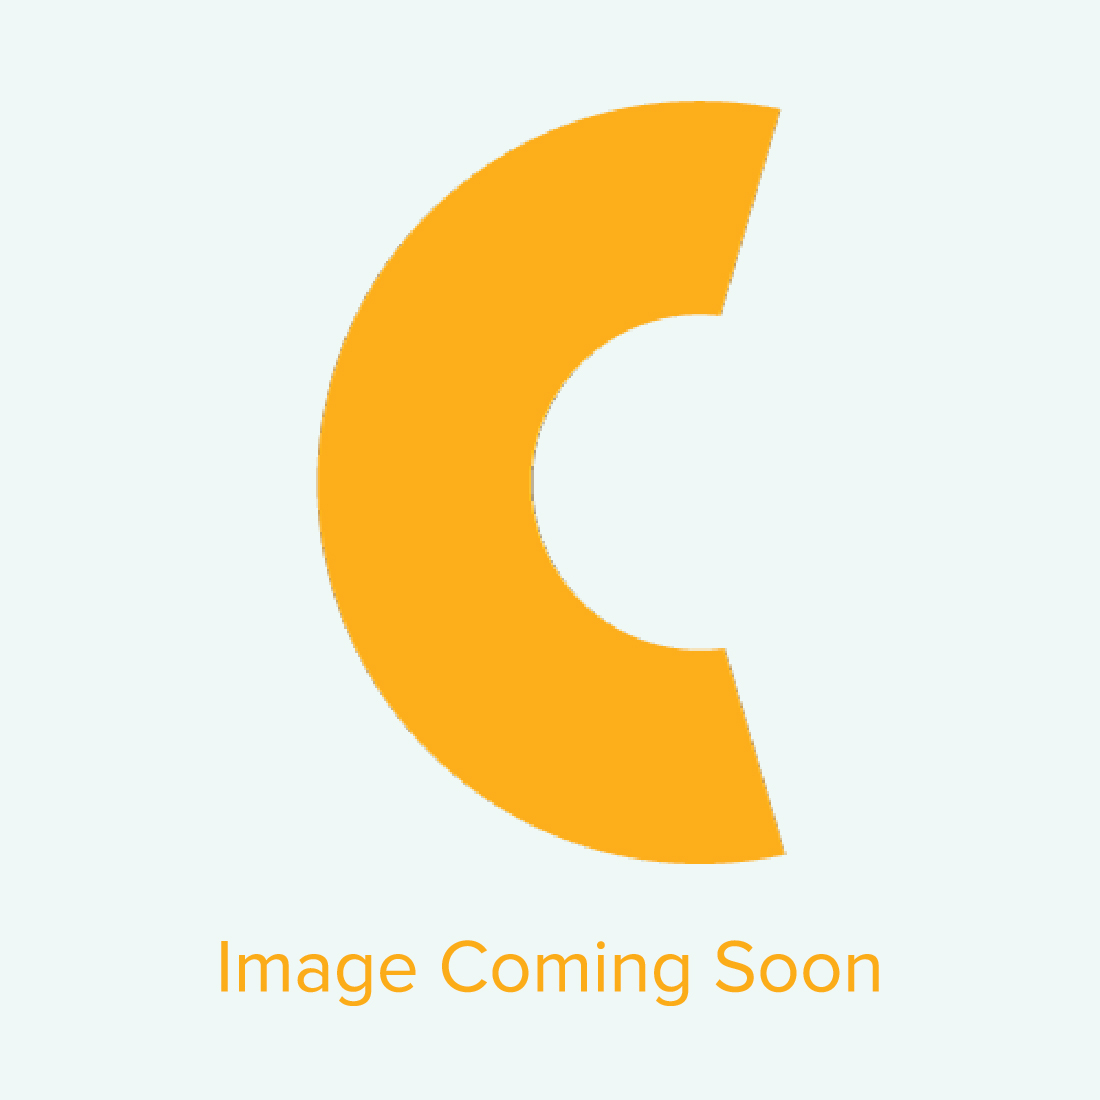 Stainless Steel 16oz. Tumbler